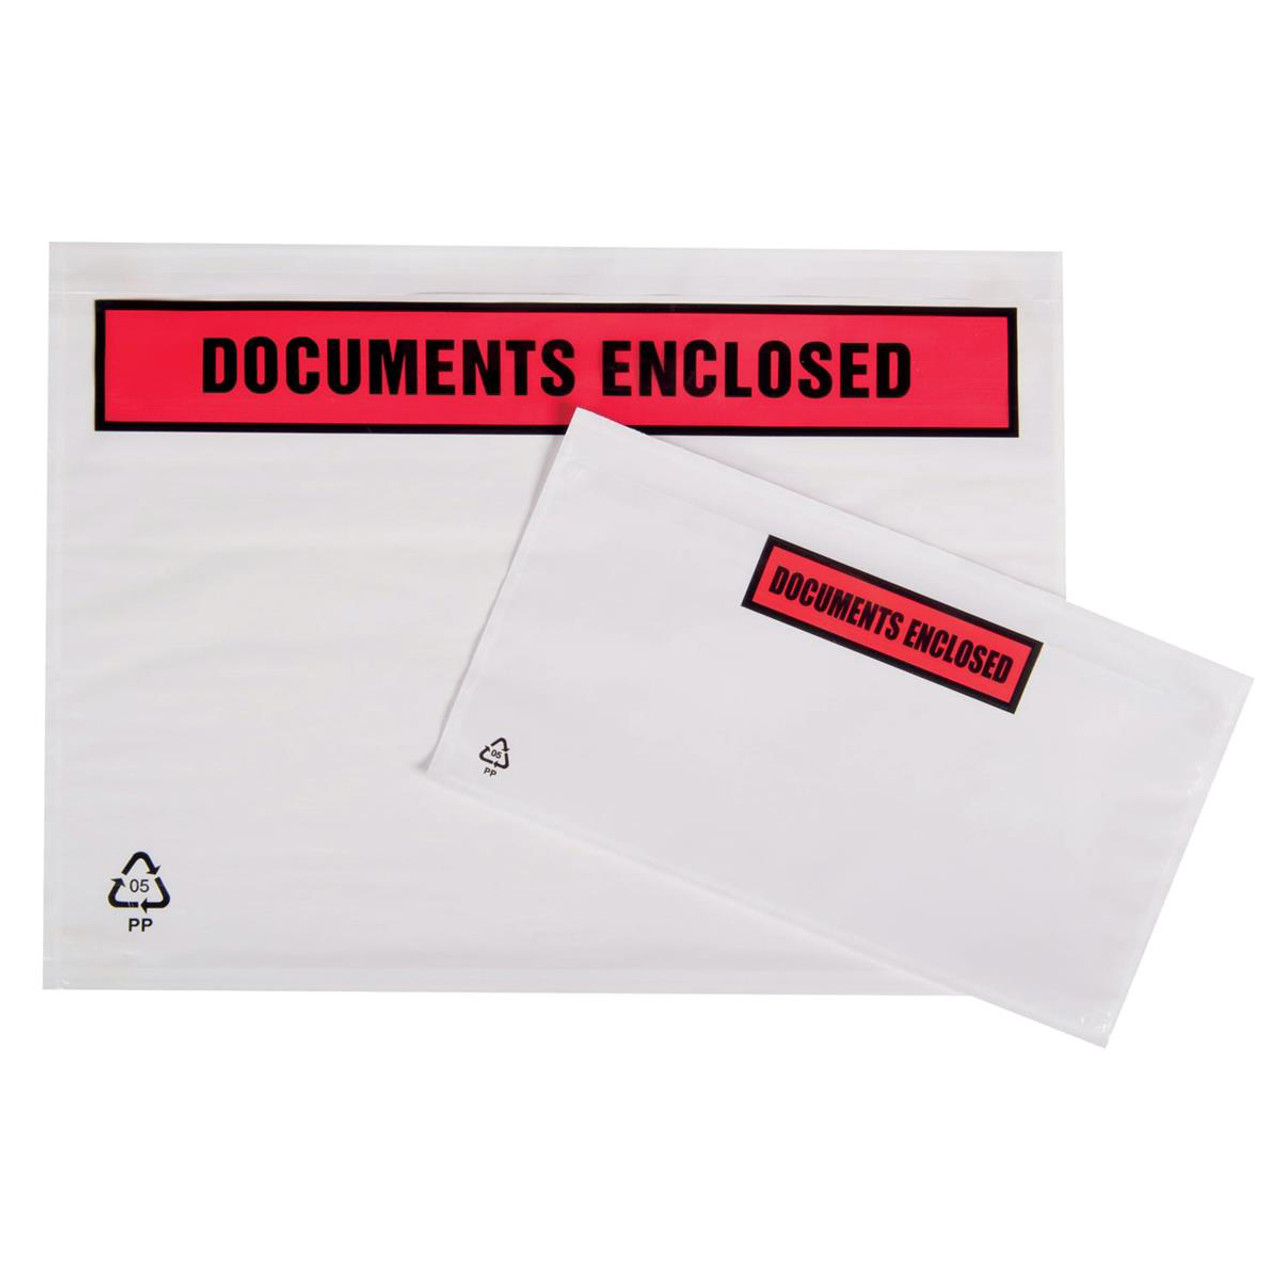 PARCELS POSTAL WALLETS 225mm x 165mm DOCUMENT ENCLOSED ENVELOPES PRINTED A5